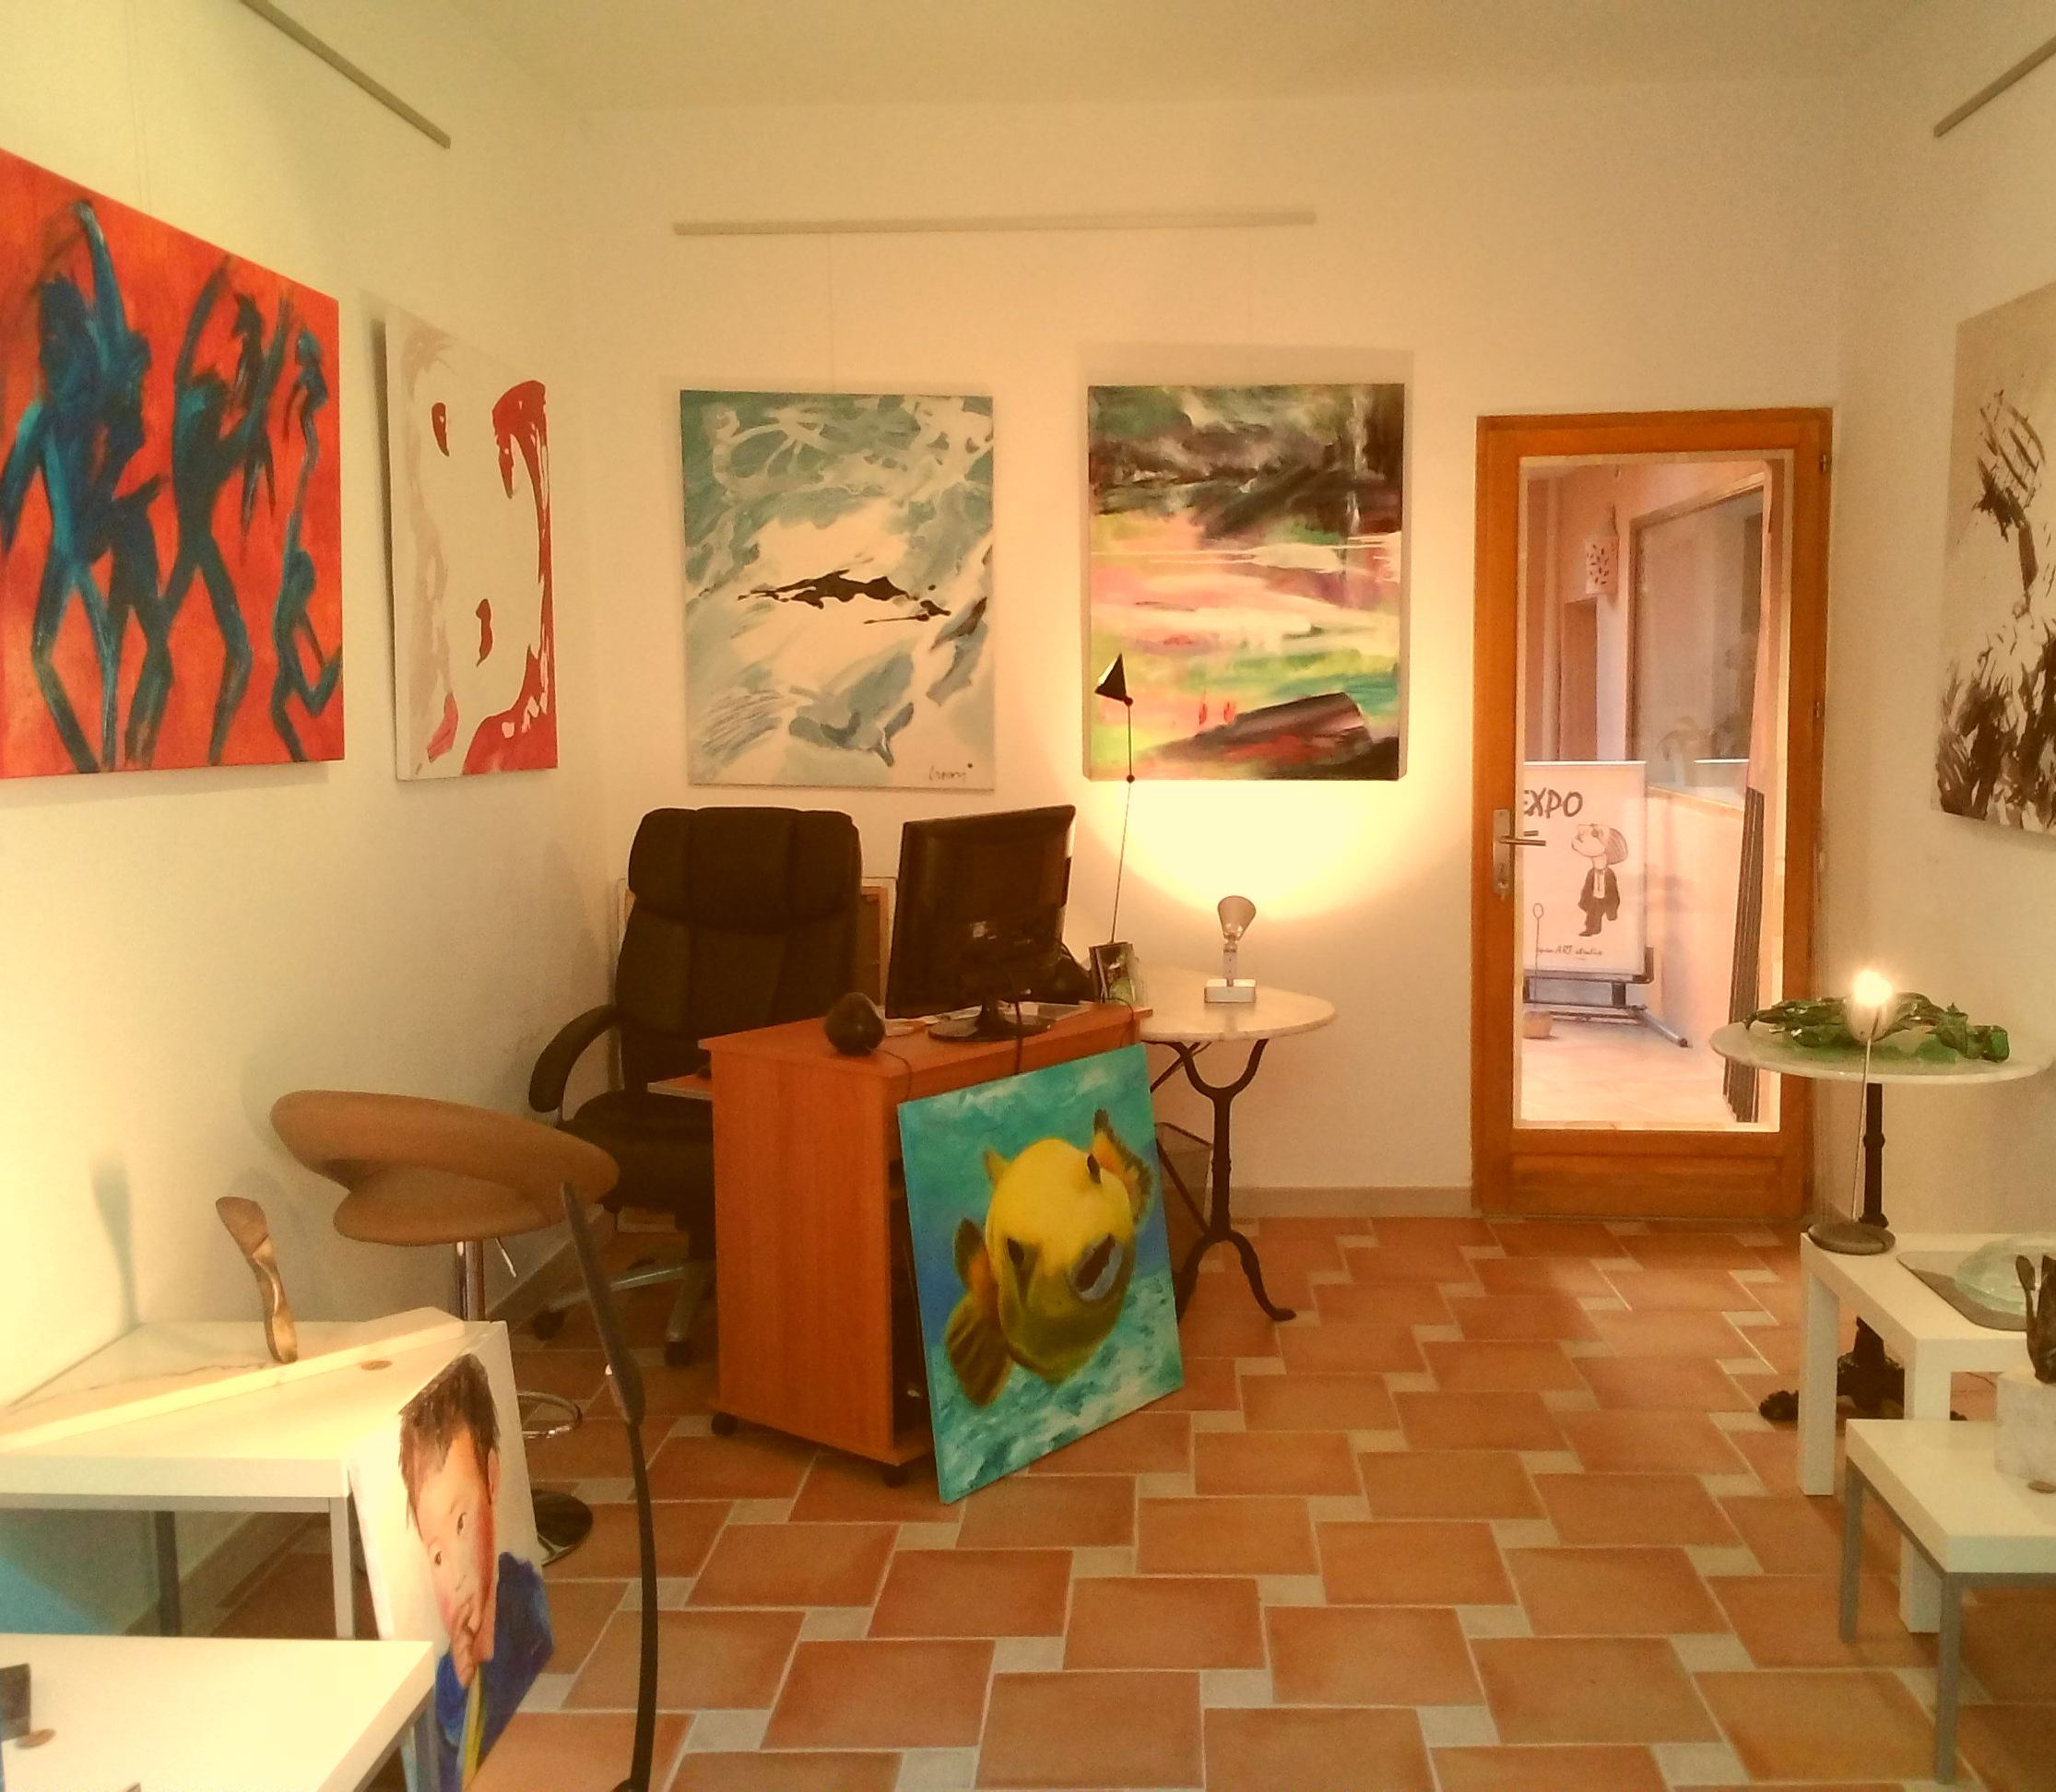 OPEN ART STUDIO réduit 4 rue Paul Buffaven 004.jpg